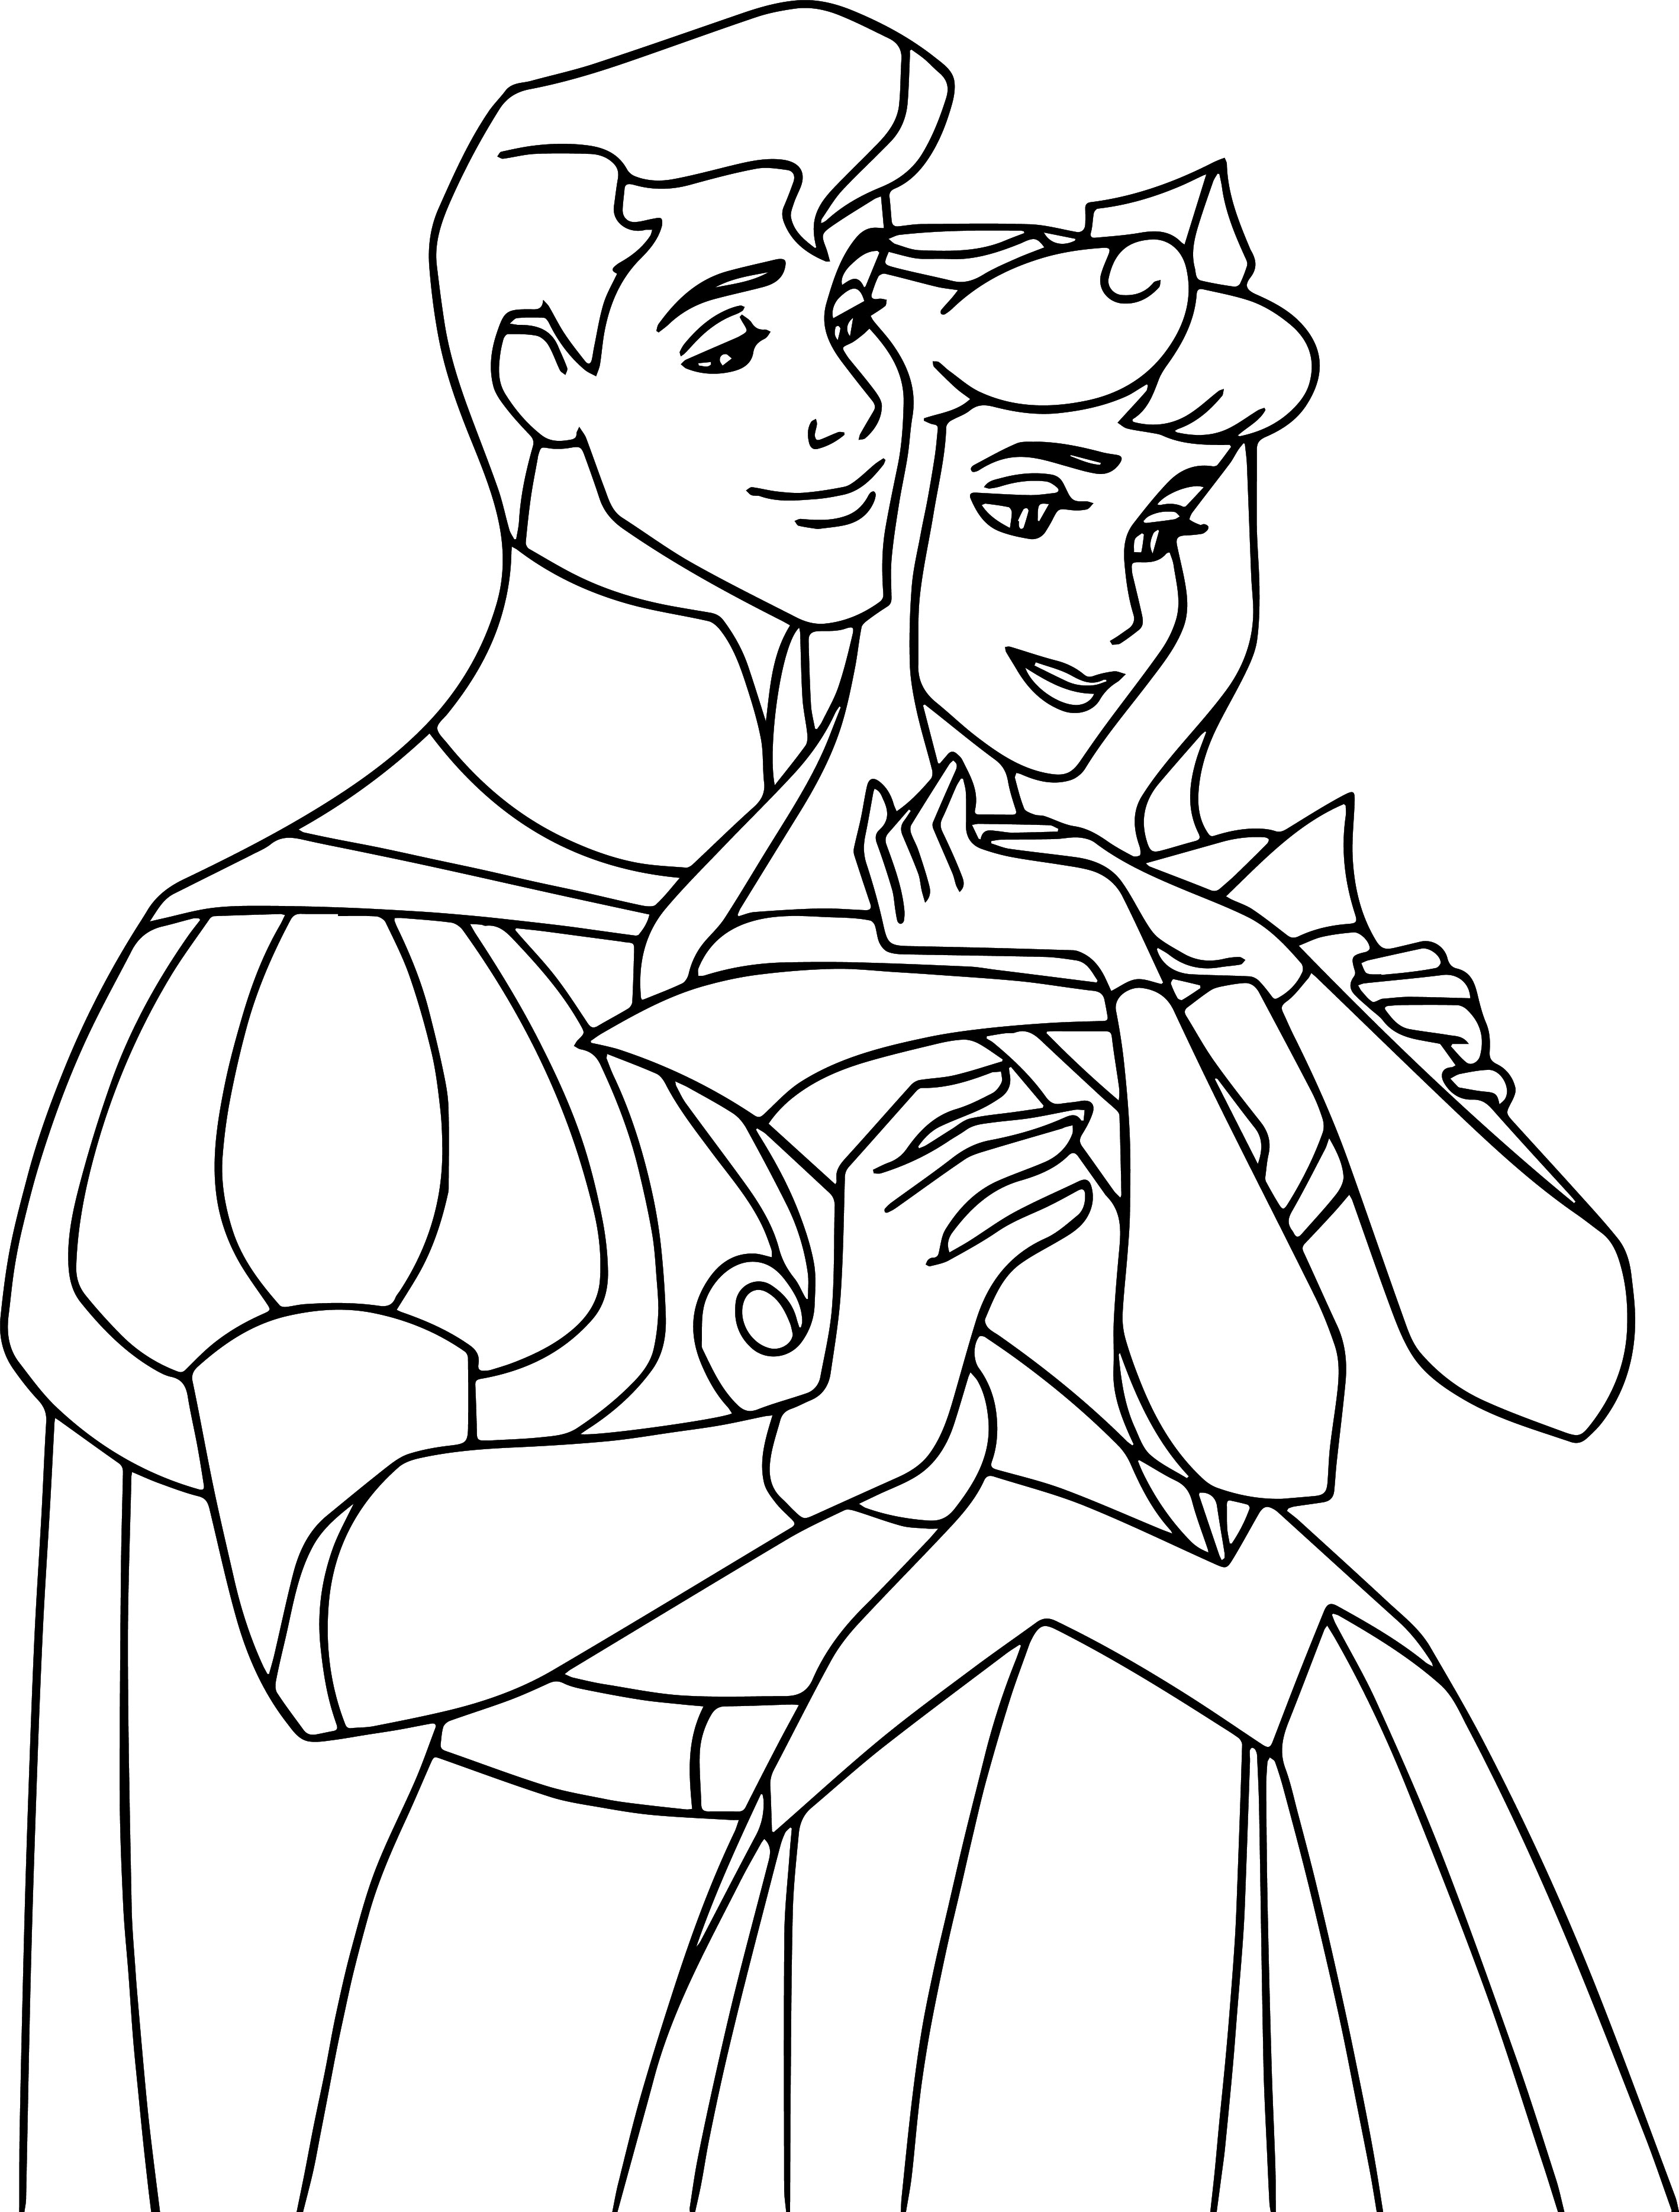 2837x3738 Disney Princess Aurora Coloring Pages For Girls Just Colorings